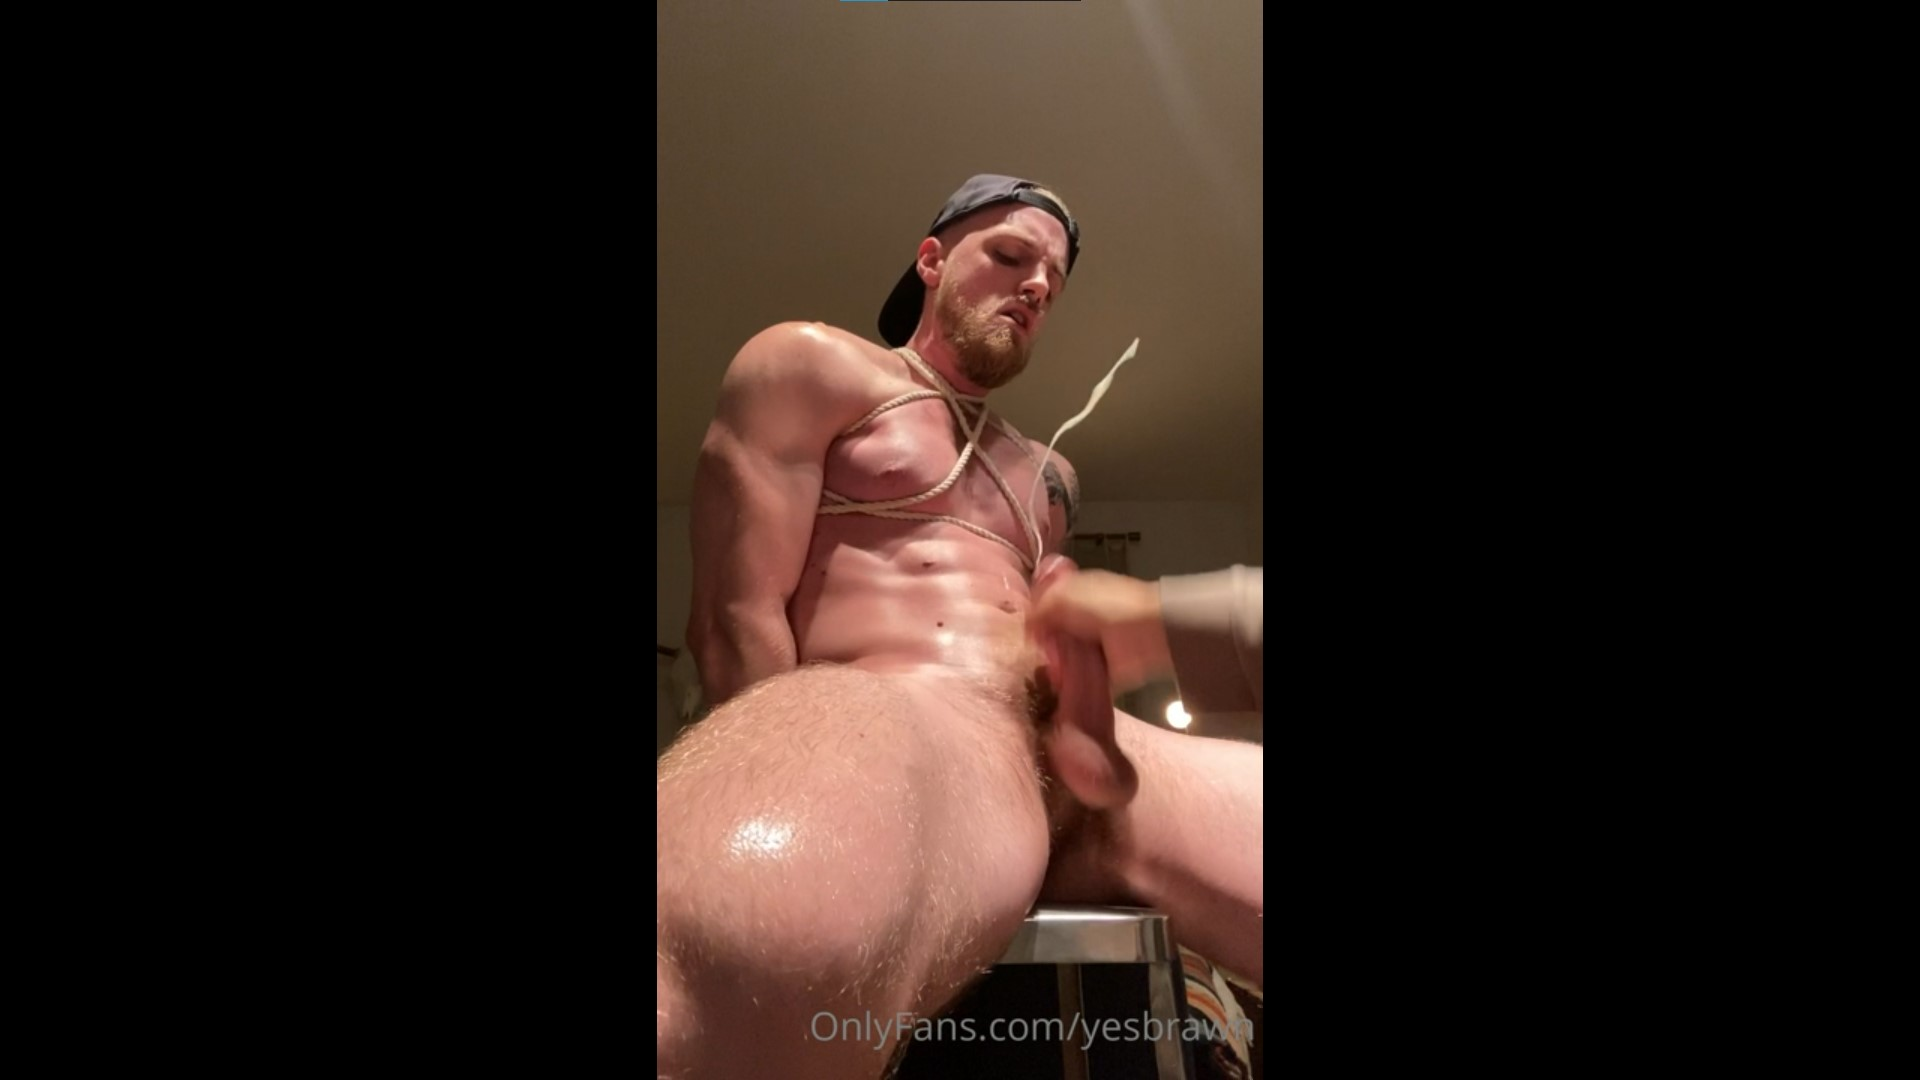 Tied up and jerked off by another guy - Yesbrawn